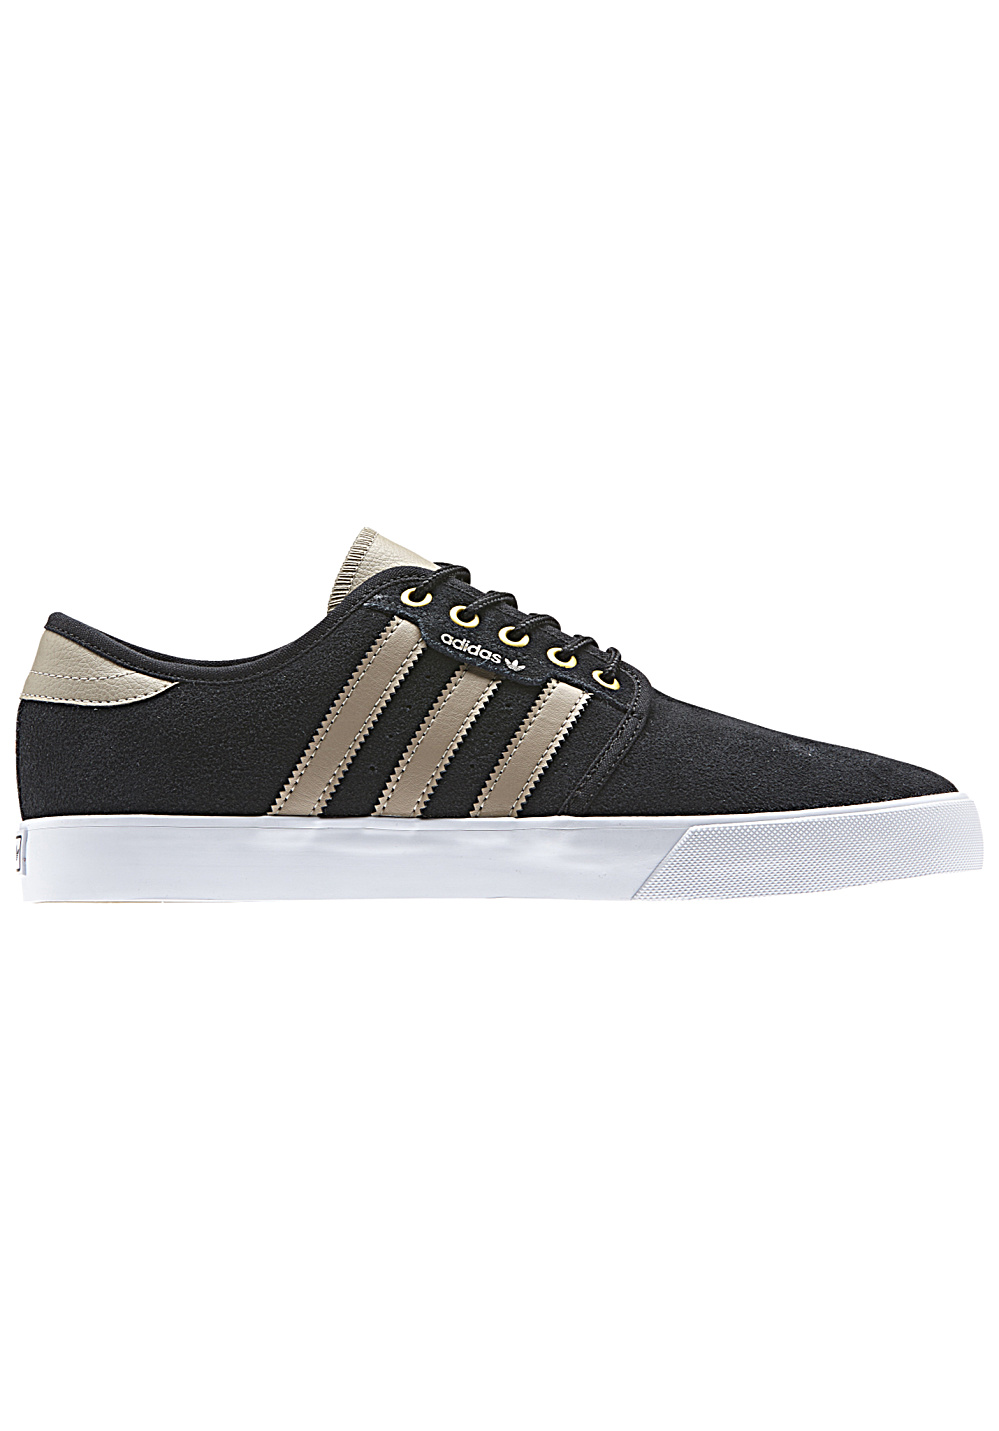 Originals Seeley Homme Noir Adidas Pour Baskets deBCxroW